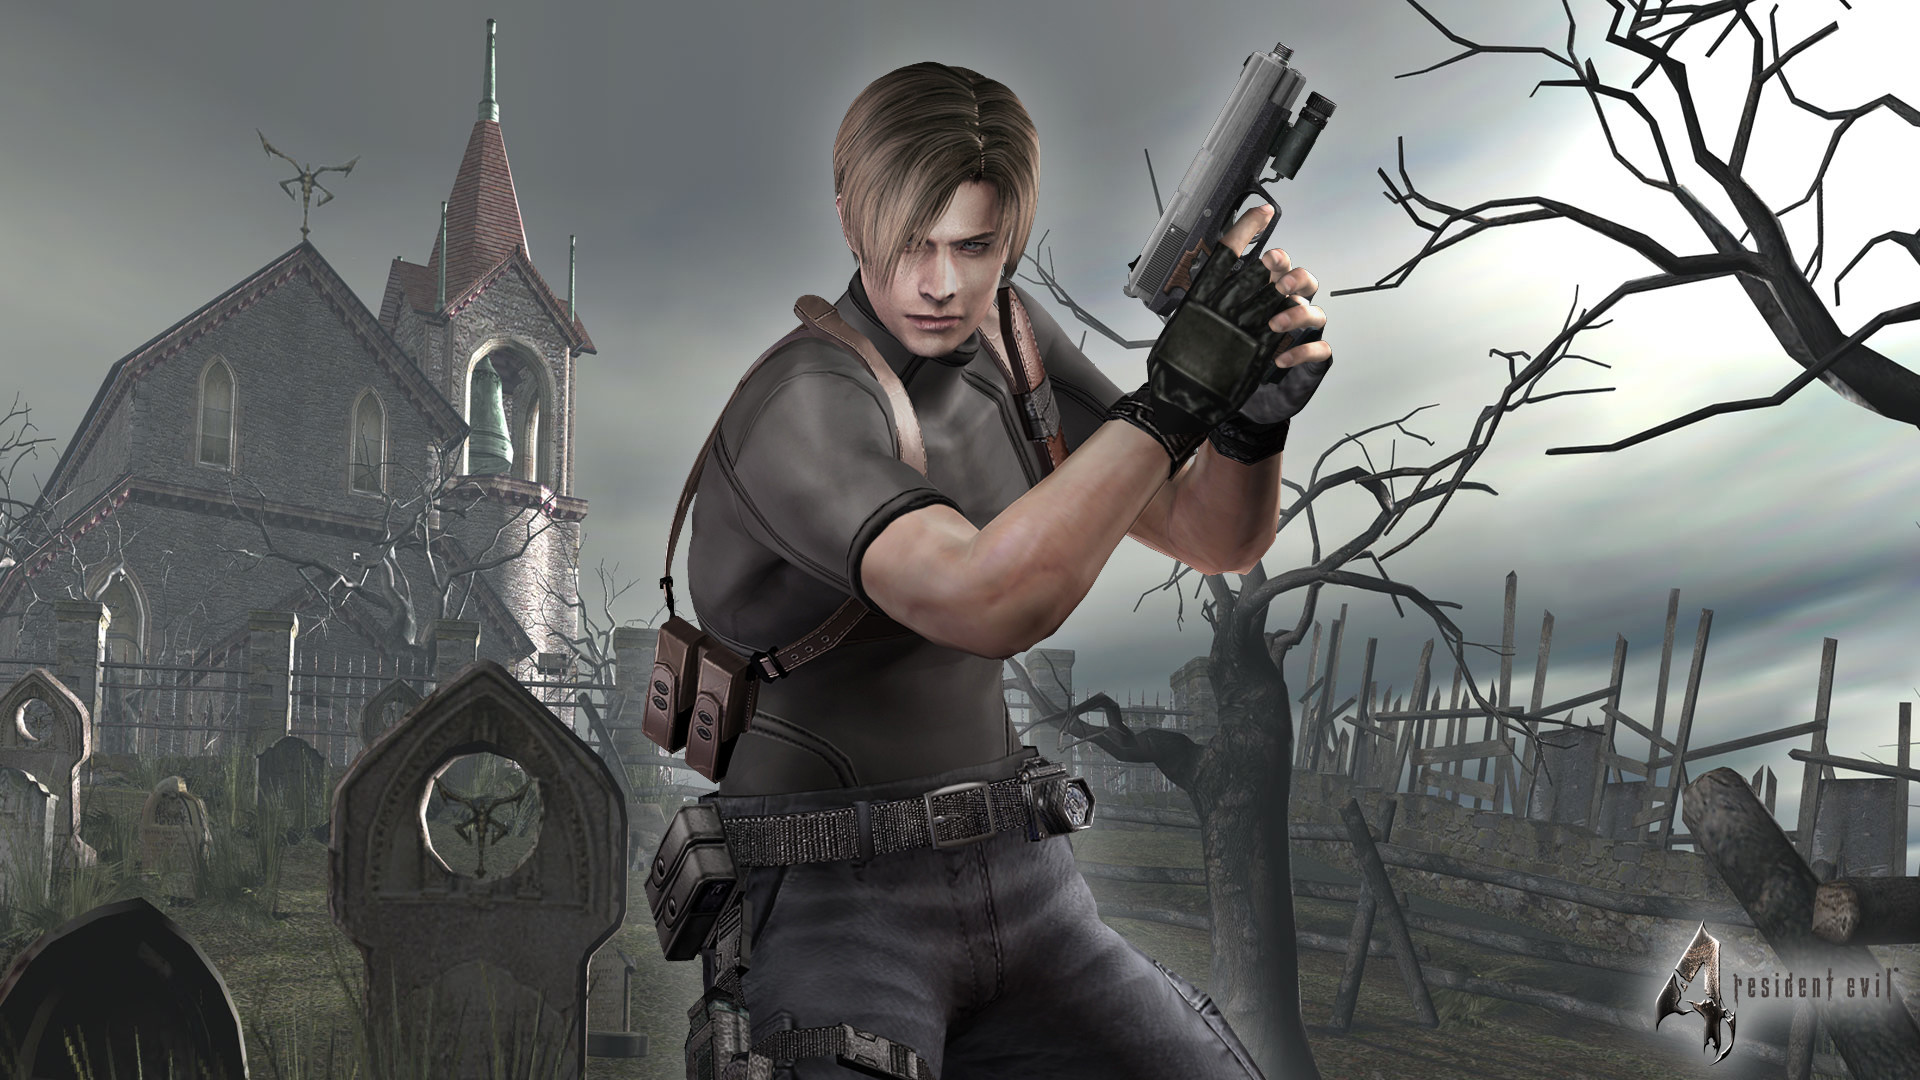 Resident Evil 4 HD Wallpapers and Background Images   stmednet 1920x1080